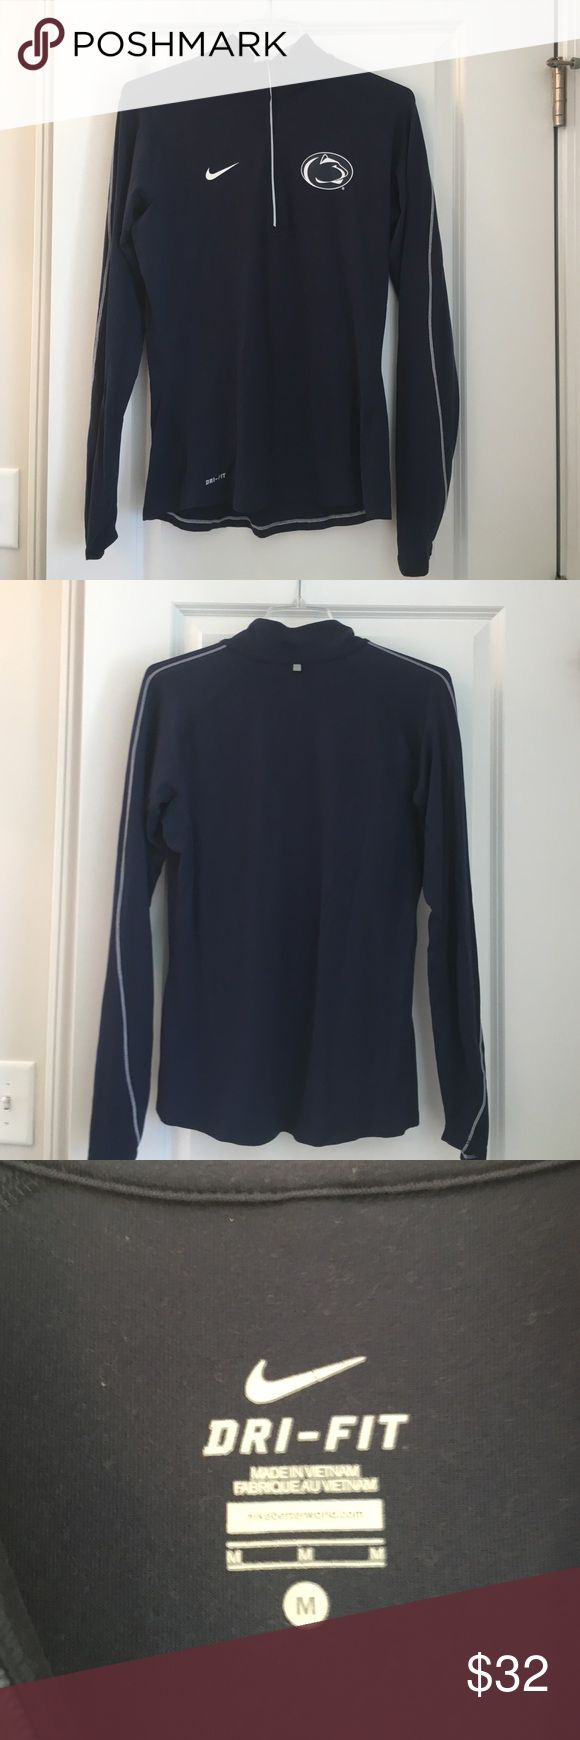 Penn state Nike pull over Worn once women's penn state pull over half zip dri fit Nike shirt, blue with penn state logo. The trim is in white and white Nike logo on opposite side of Psu logo. Reasonable offers welcome Nike Tops Tees - Long Sleeve